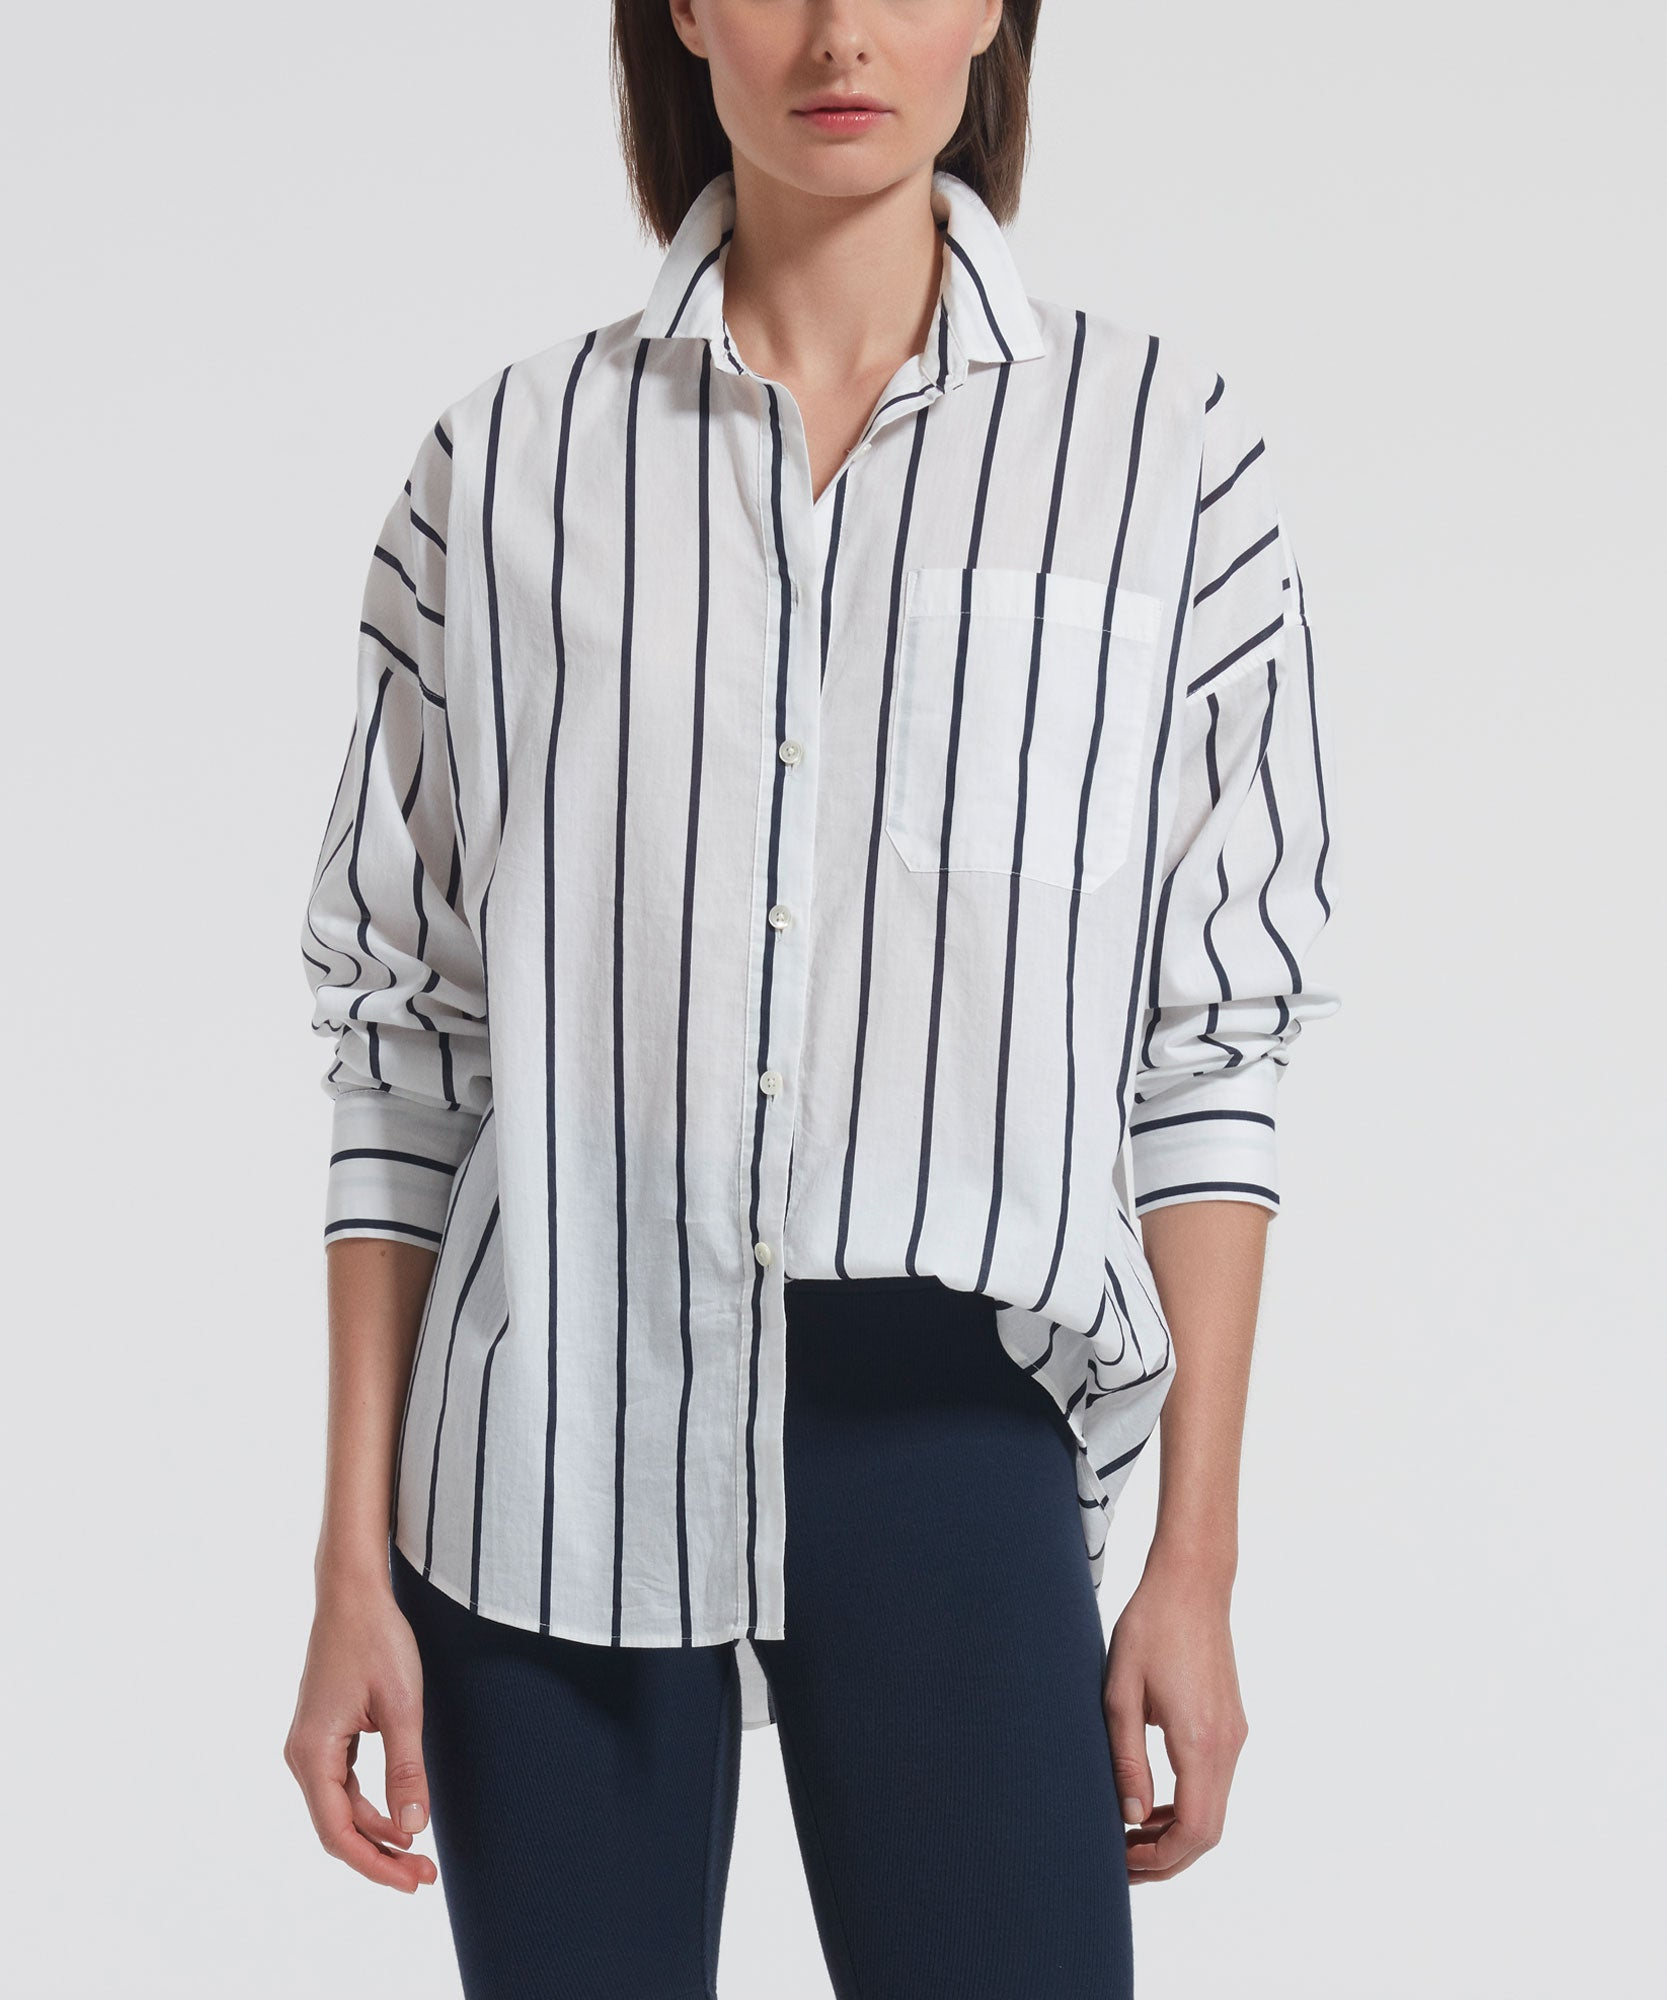 White and Midnight Stripe Cotton Linen Boyfriend Shirt - Women's Button Down Shirt by ATM Anthony Thomas Melillo